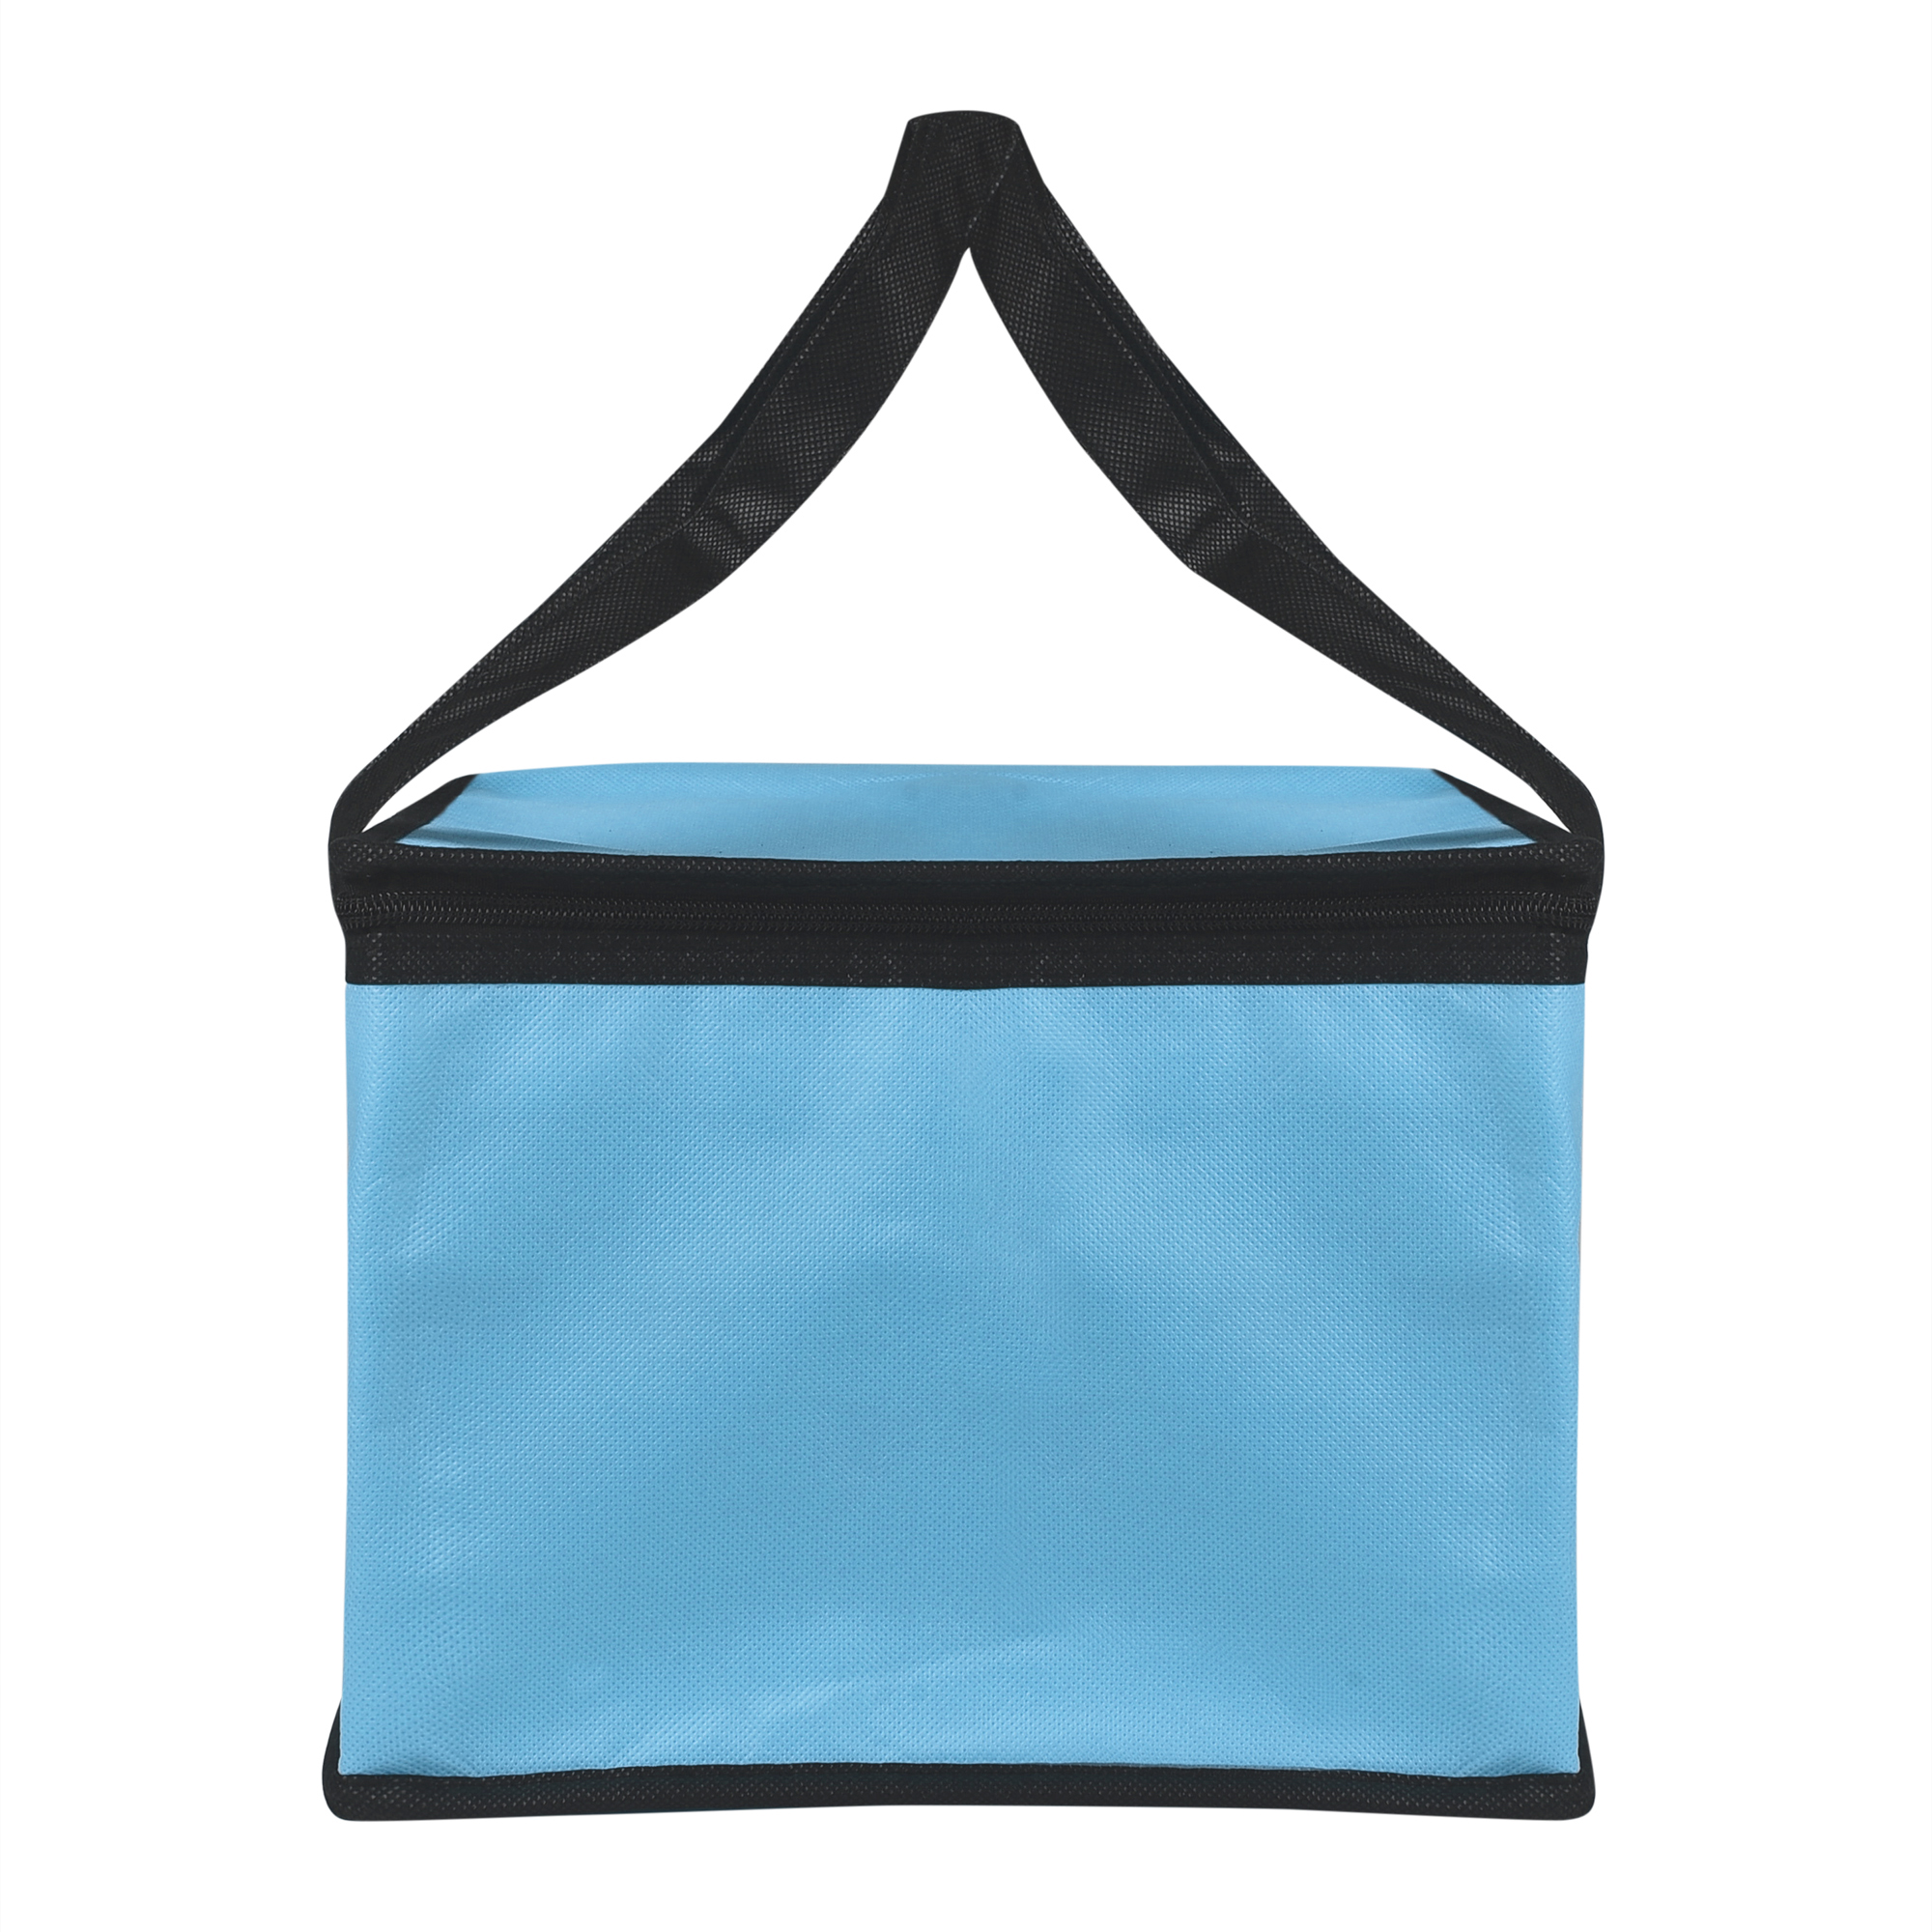 Portable Cool Bag Insulated Cooler Food Can Drink Lunch Picnic Hiking 21L //12.5L